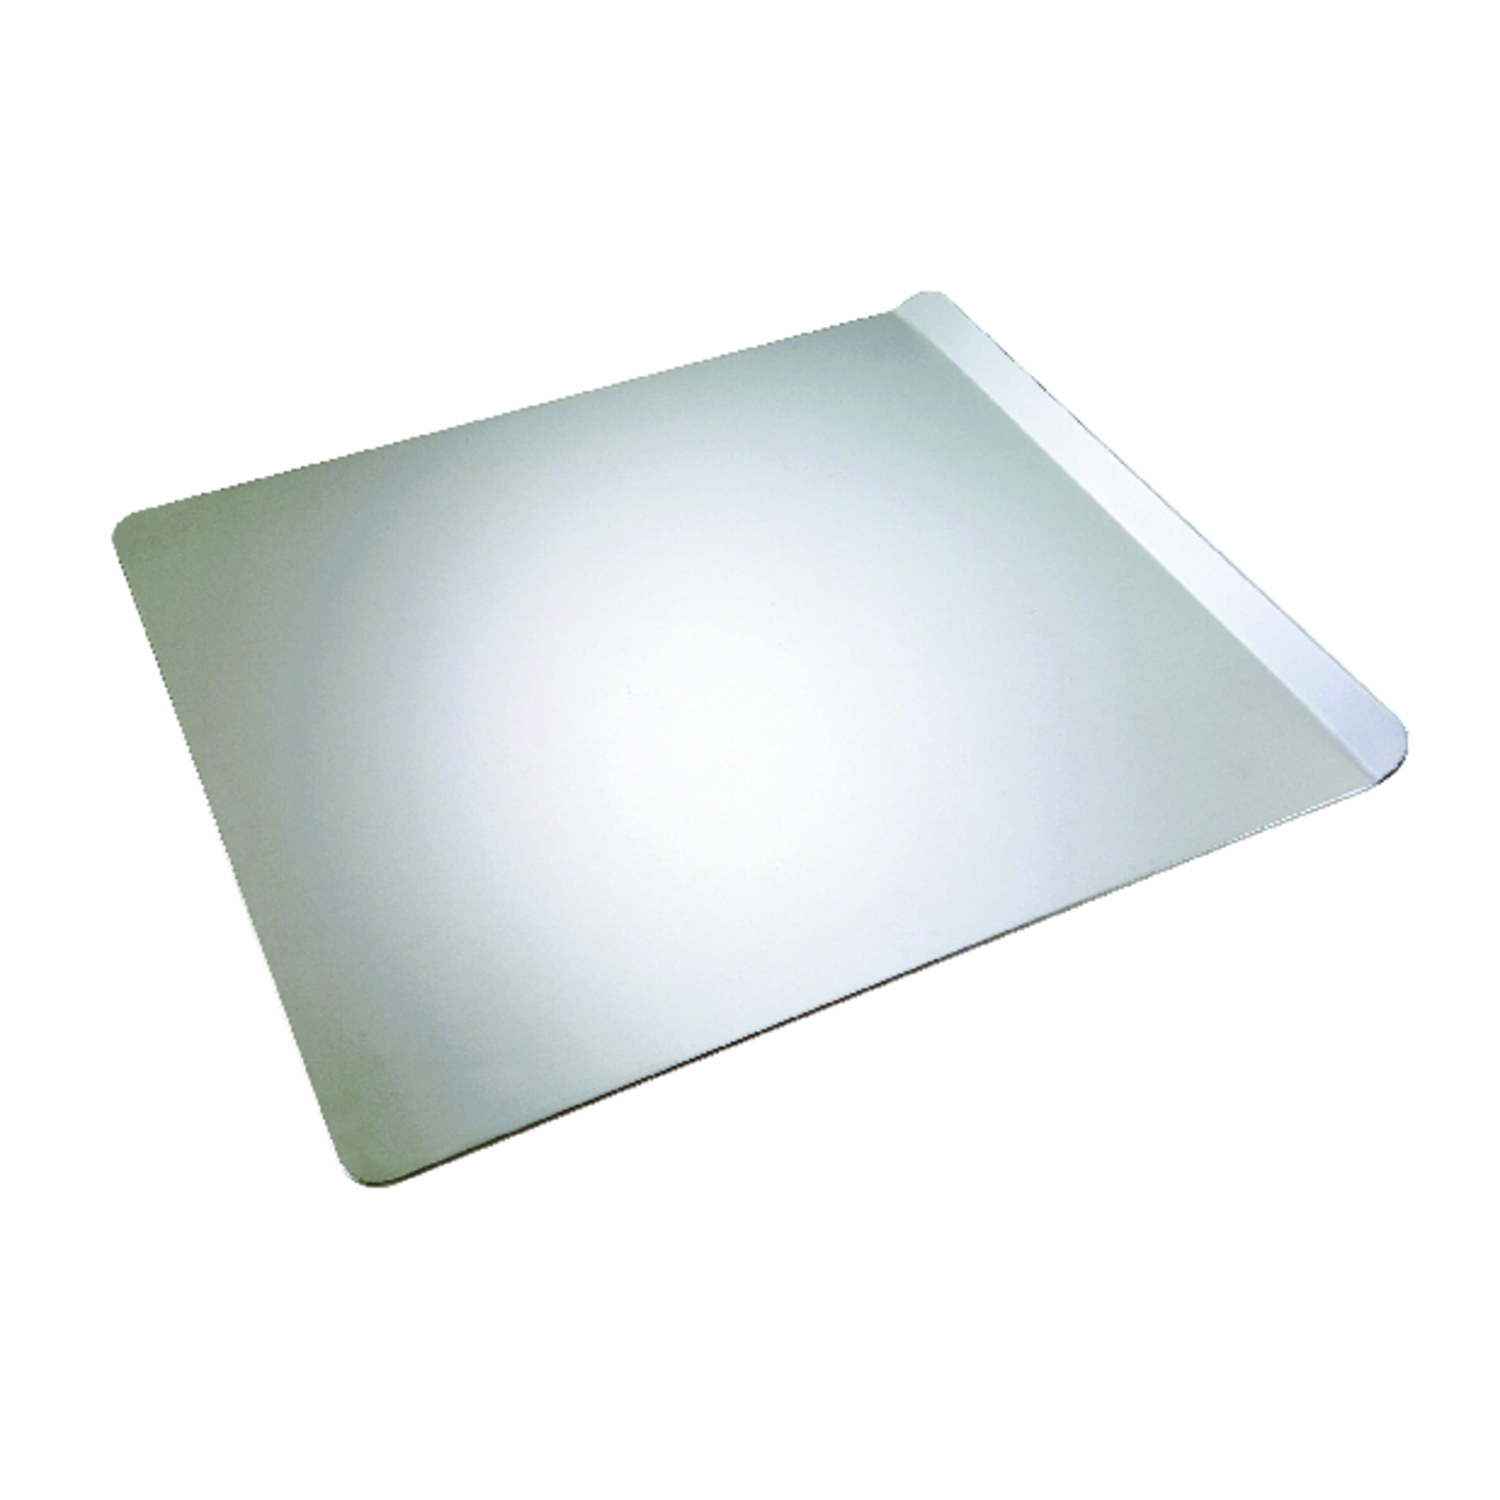 Airbake  14 in. W x 16 in. L Cookie Baking Sheet  Silver